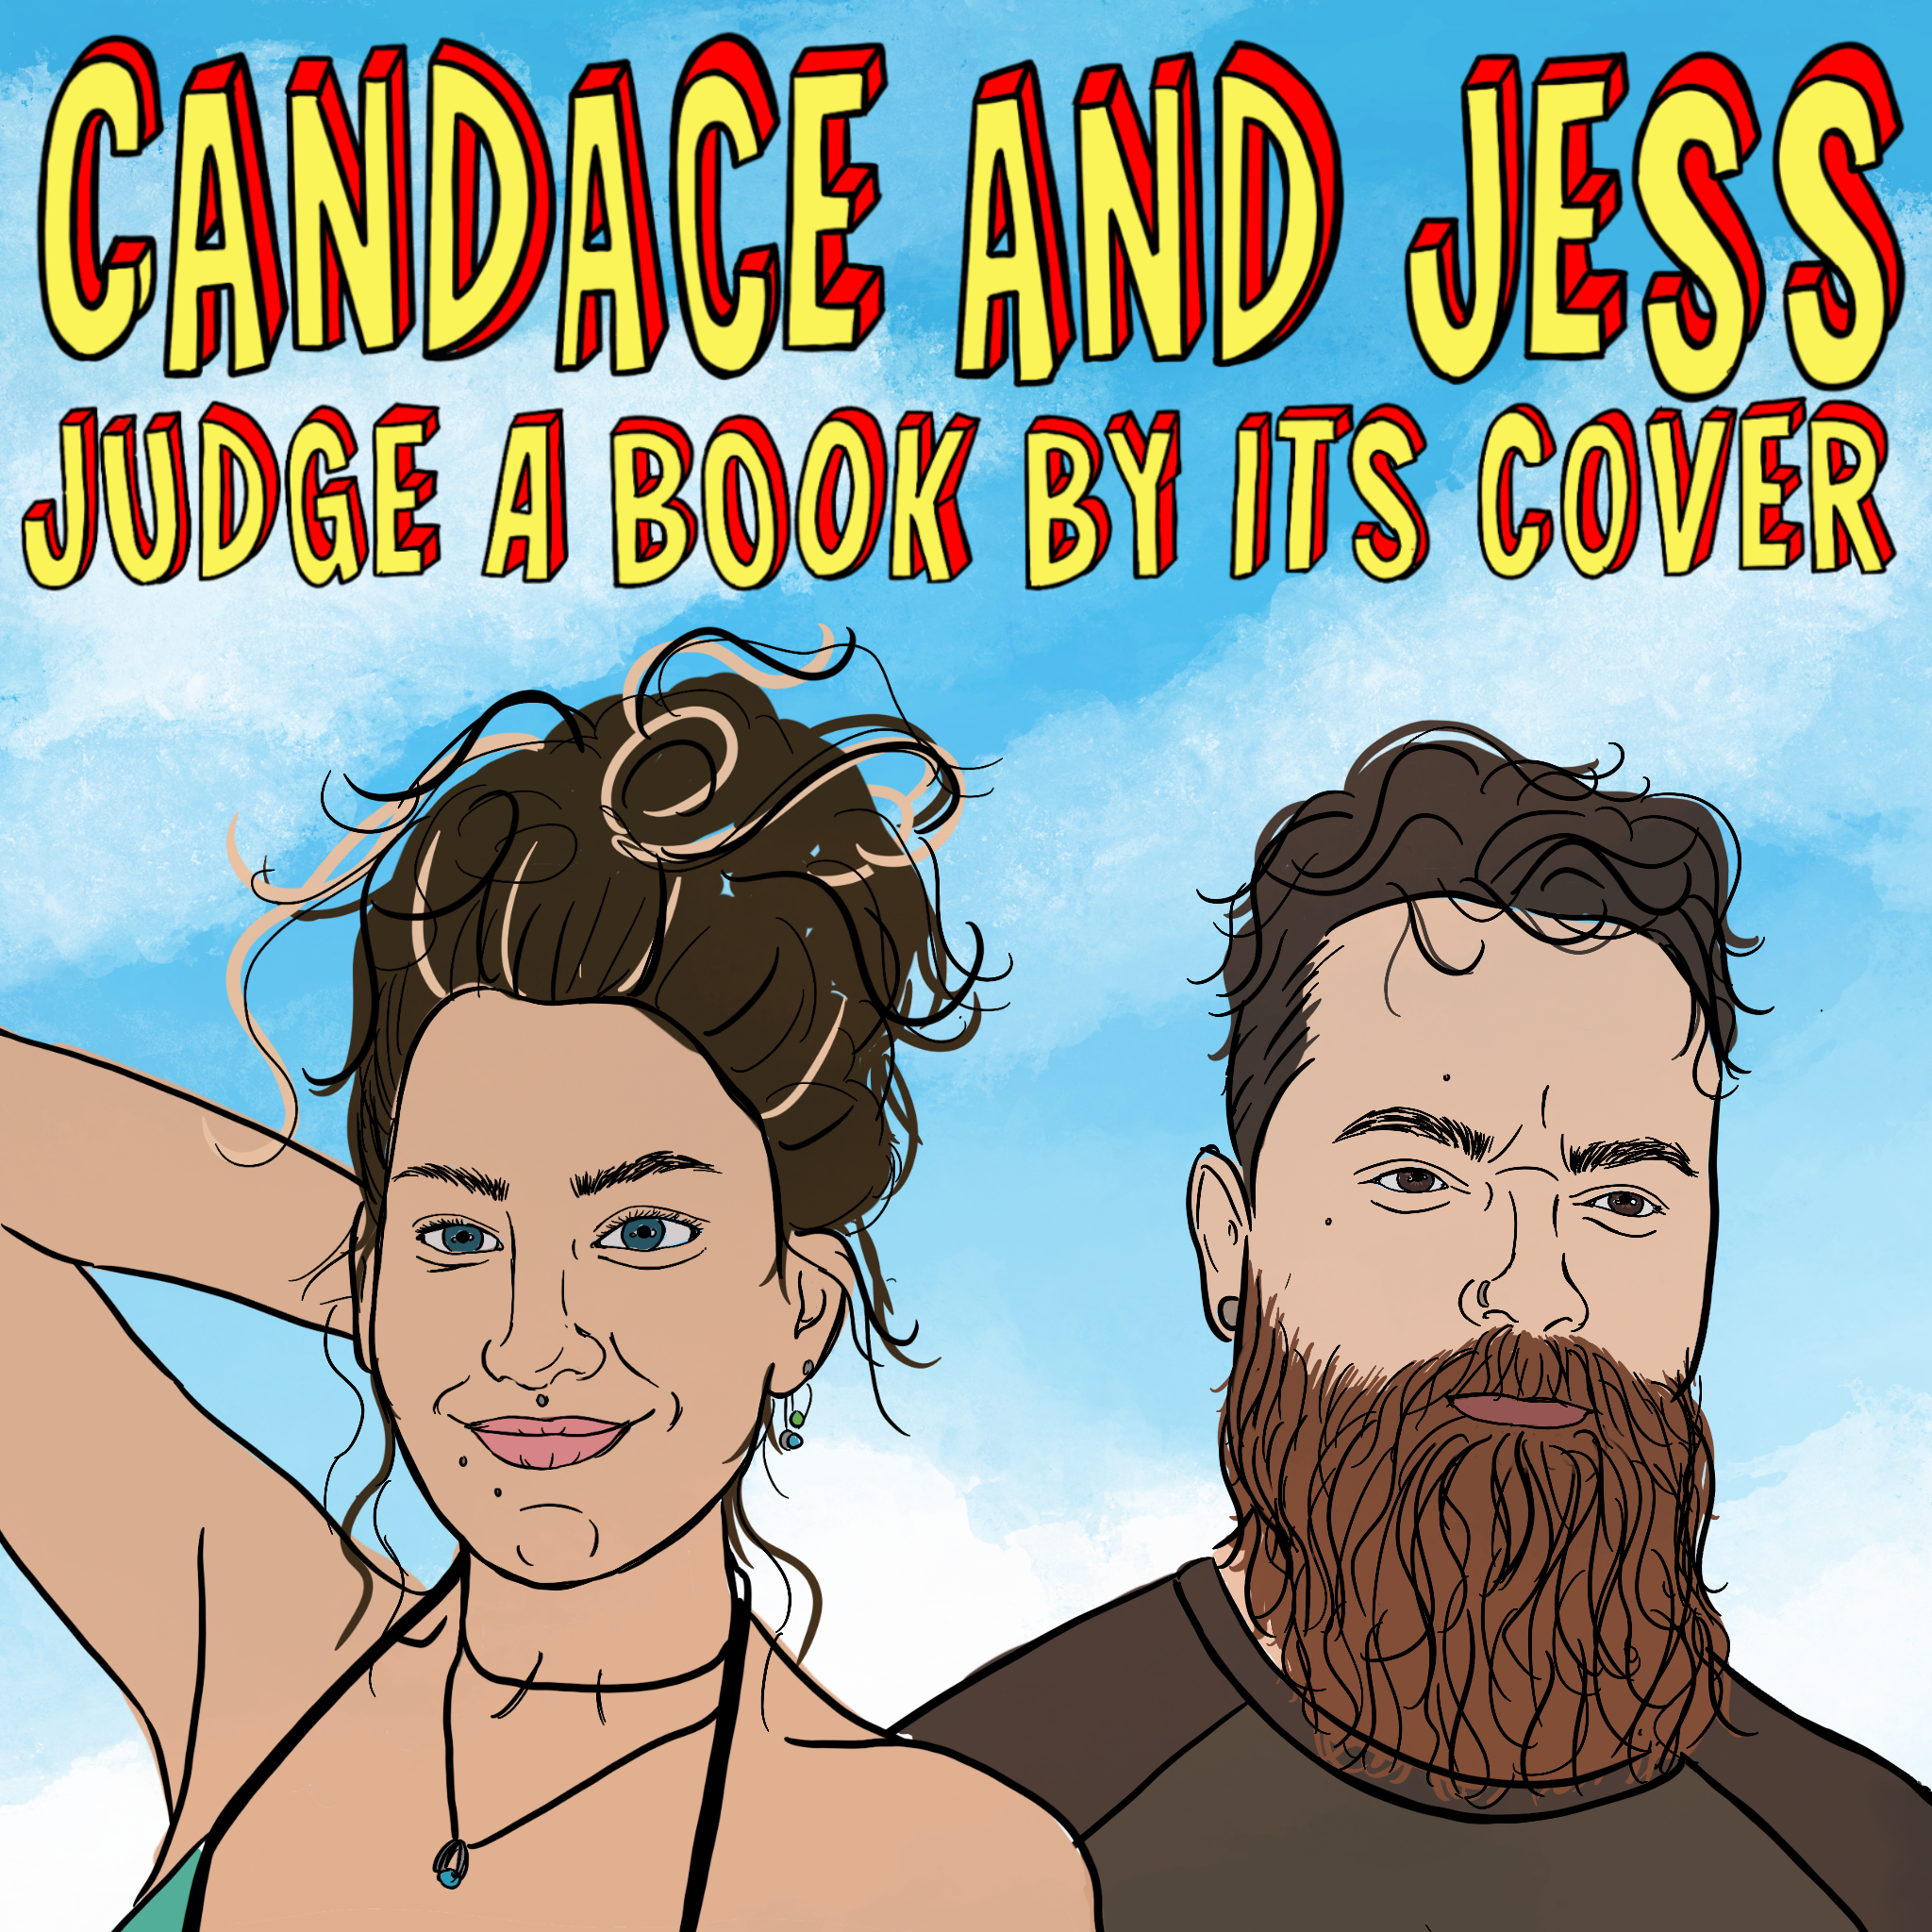 Candace and Jess Judge A Book by its Cover